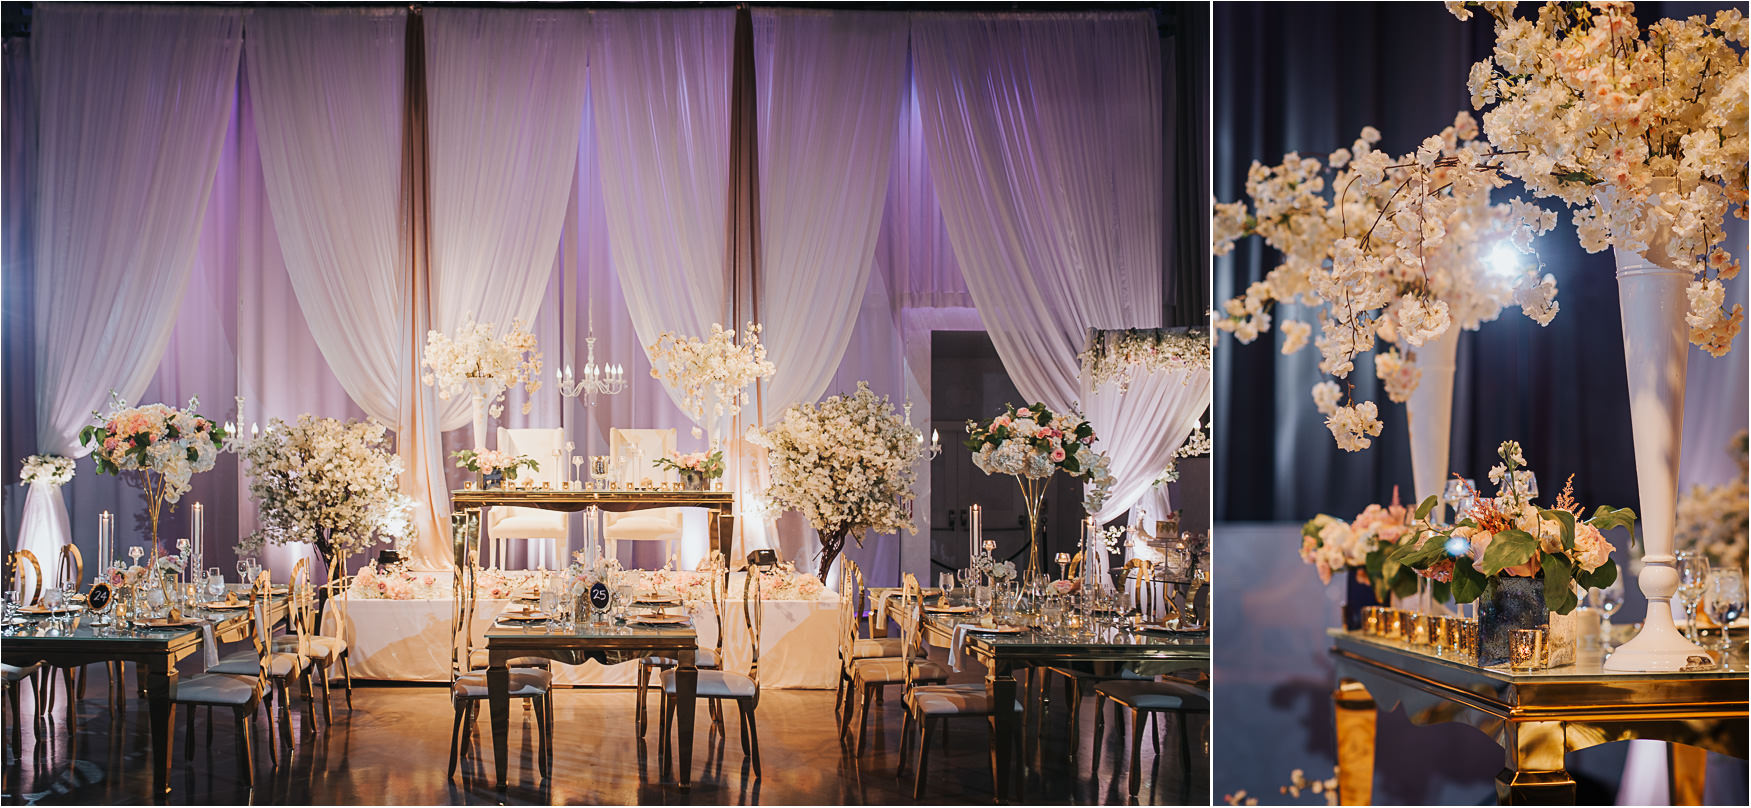 Liberty Grand Artifacts Room Wedding Reception Sweetheart Tables